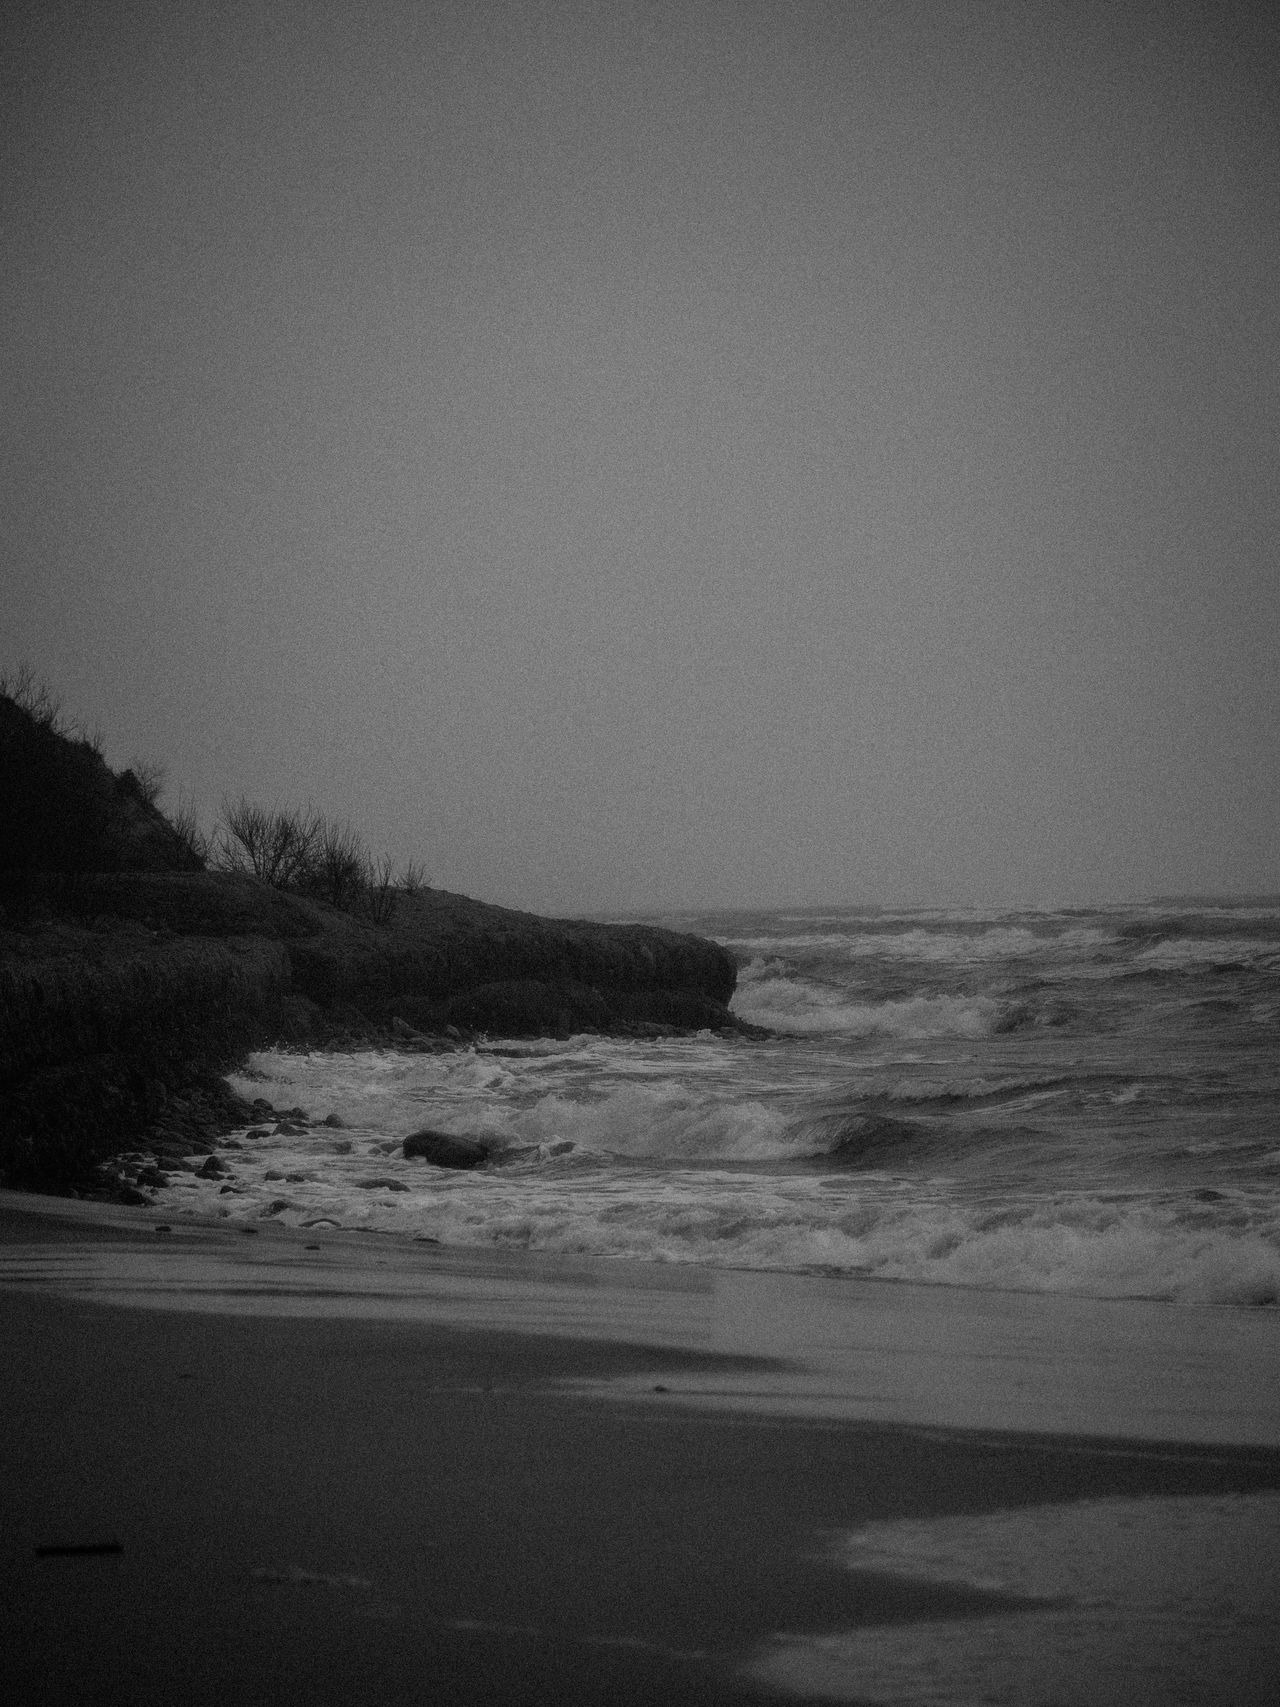 Beach Beauty In Nature Black And White Day Landscape Nature No People Outdoors Scenics Sea Sky Tranquil Scene Tranquility Water Wave